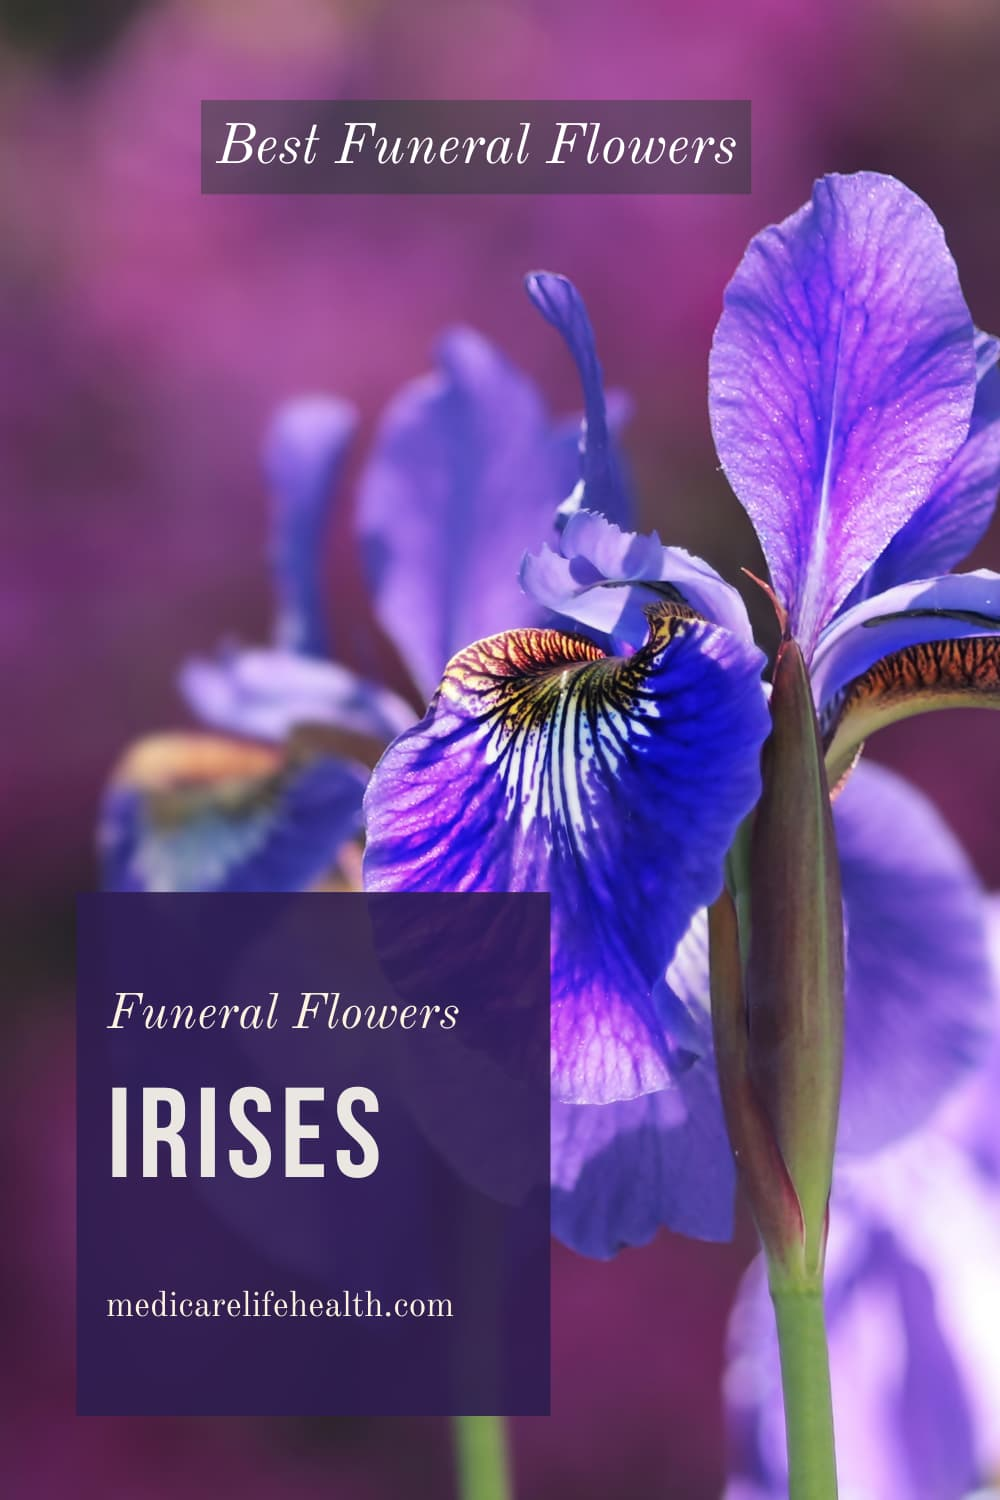 irises funeral flowers best flowers for funerals